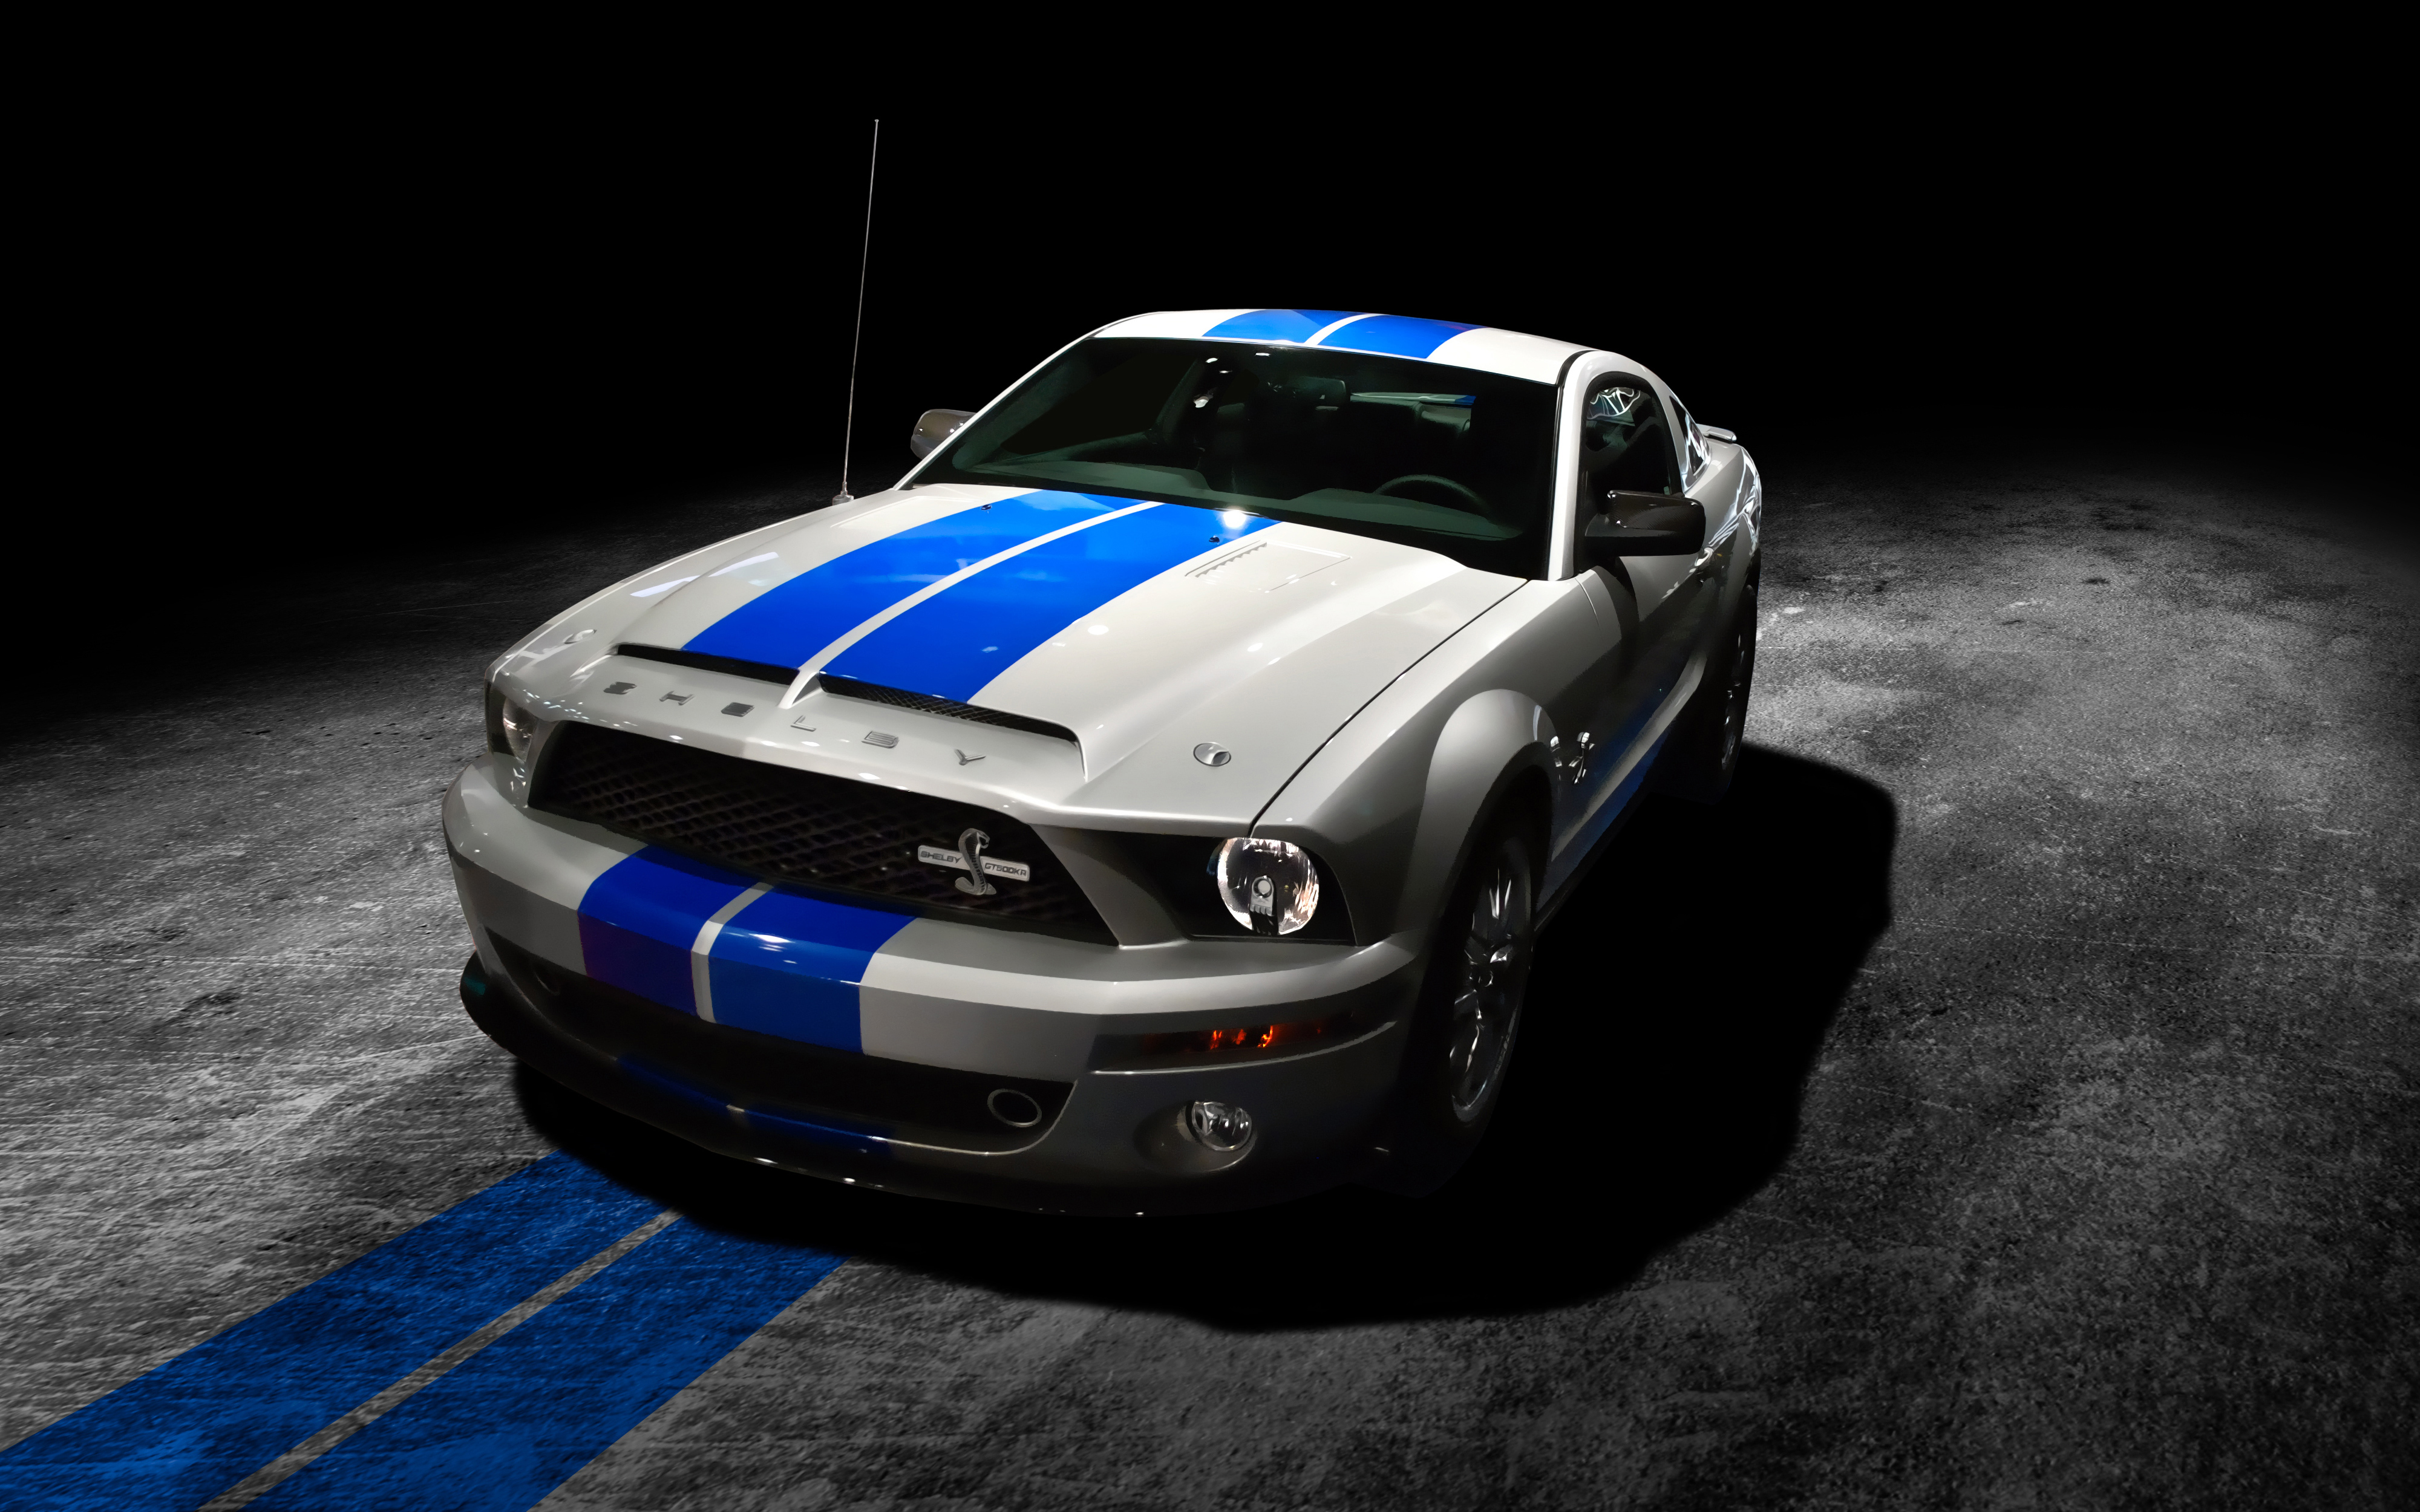 2013 ford mustang shelby gt500kr wallpaper hd car wallpapers id 2830. Black Bedroom Furniture Sets. Home Design Ideas